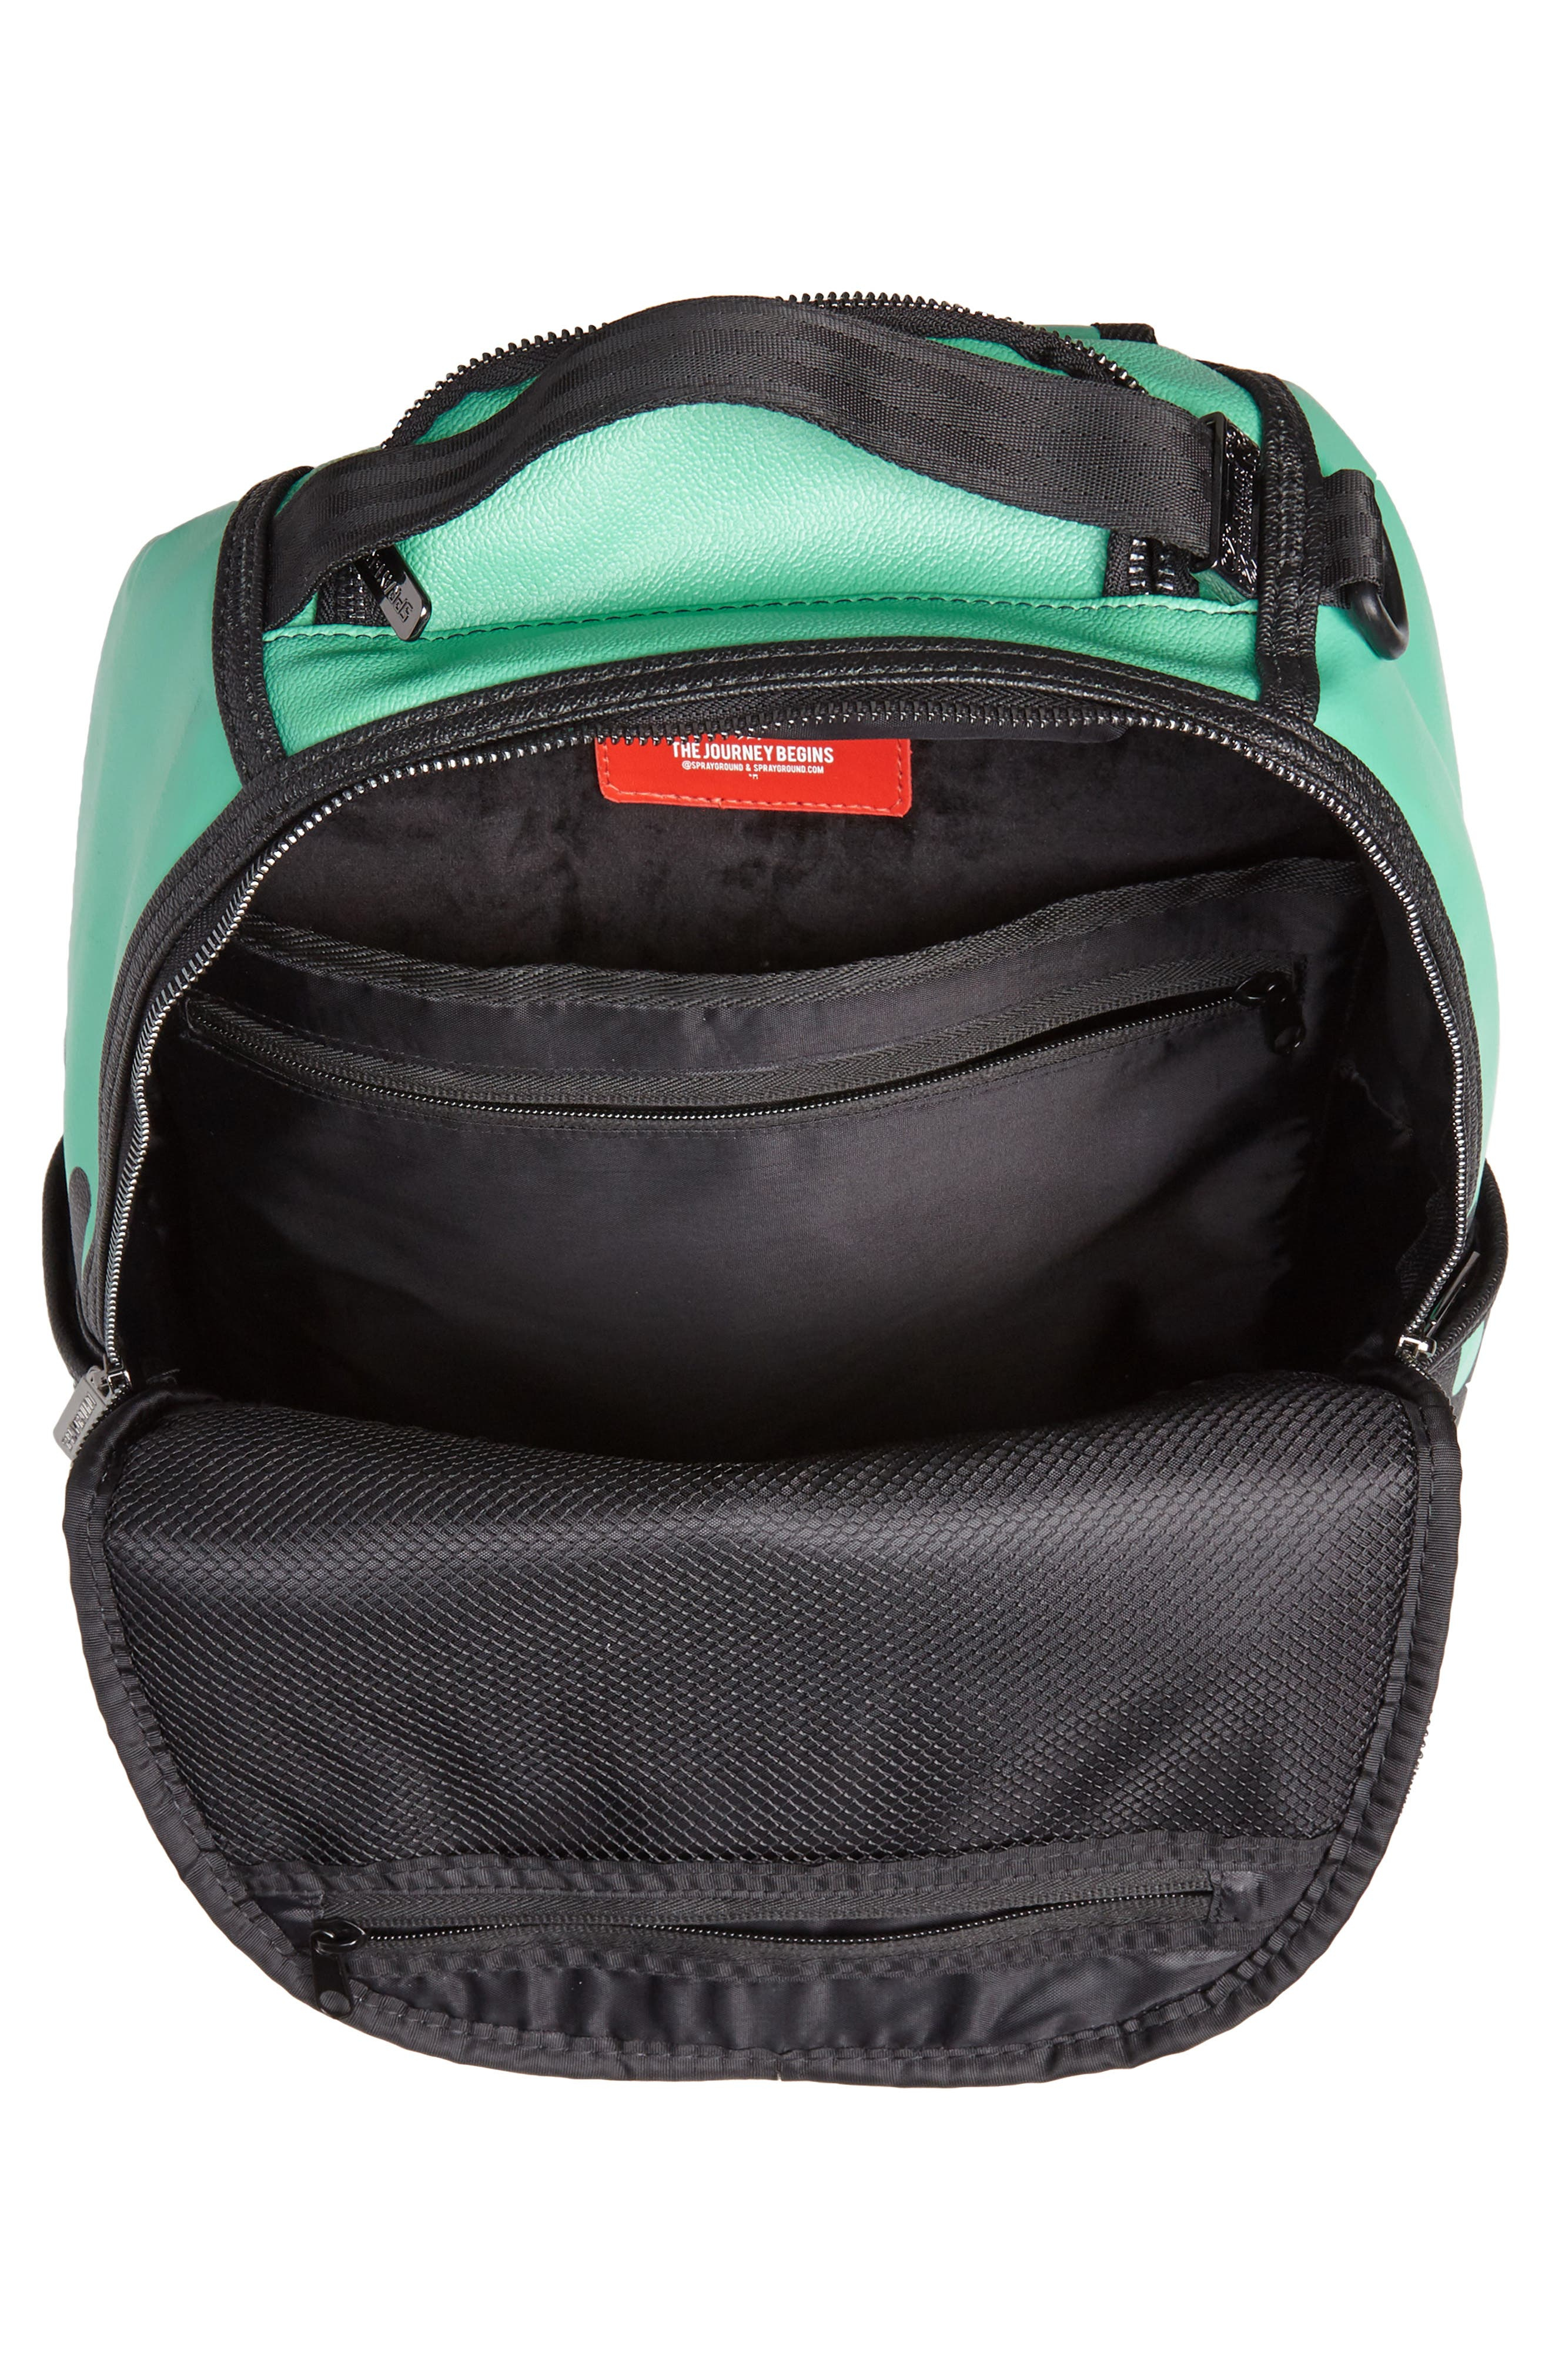 Tiff Drips Print Backpack,                             Alternate thumbnail 4, color,                             Camo/ Teal